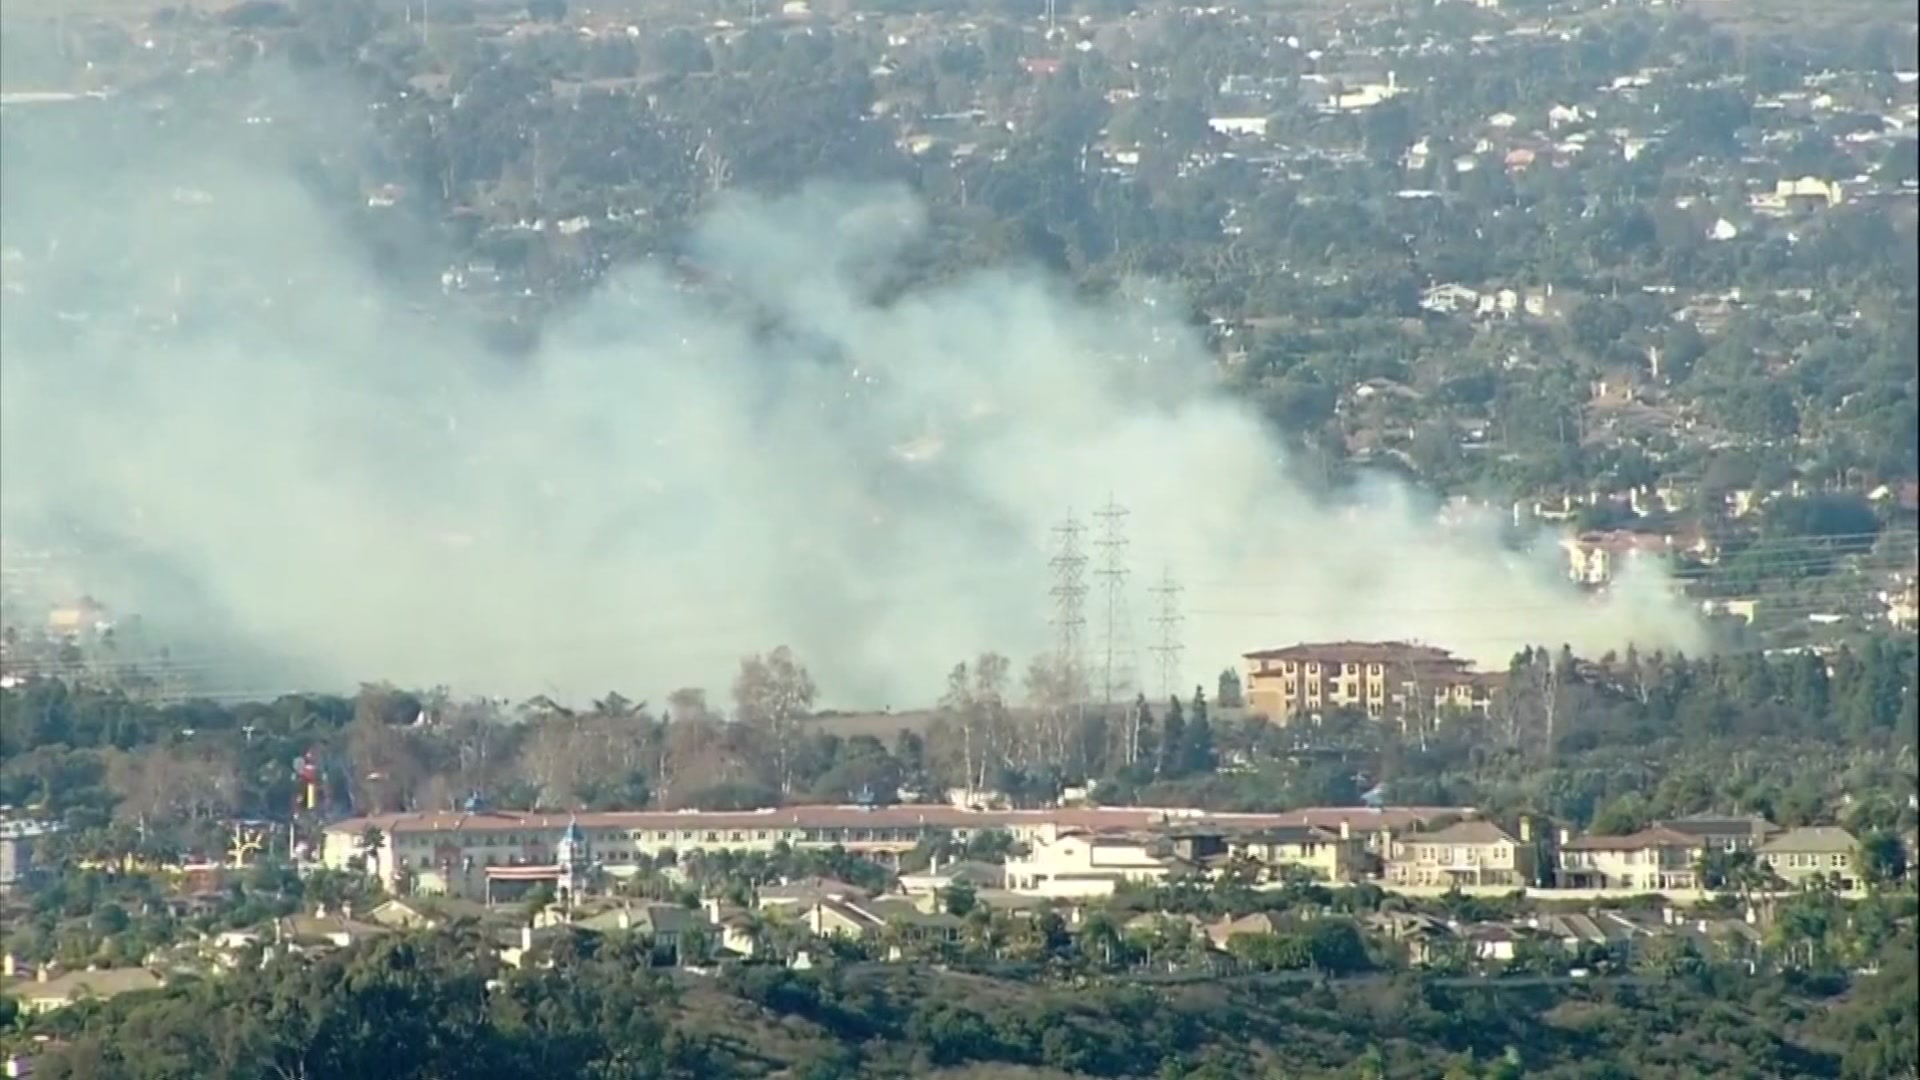 Arson Suspect Arrested in Connection with Park Fire in Carlsbad